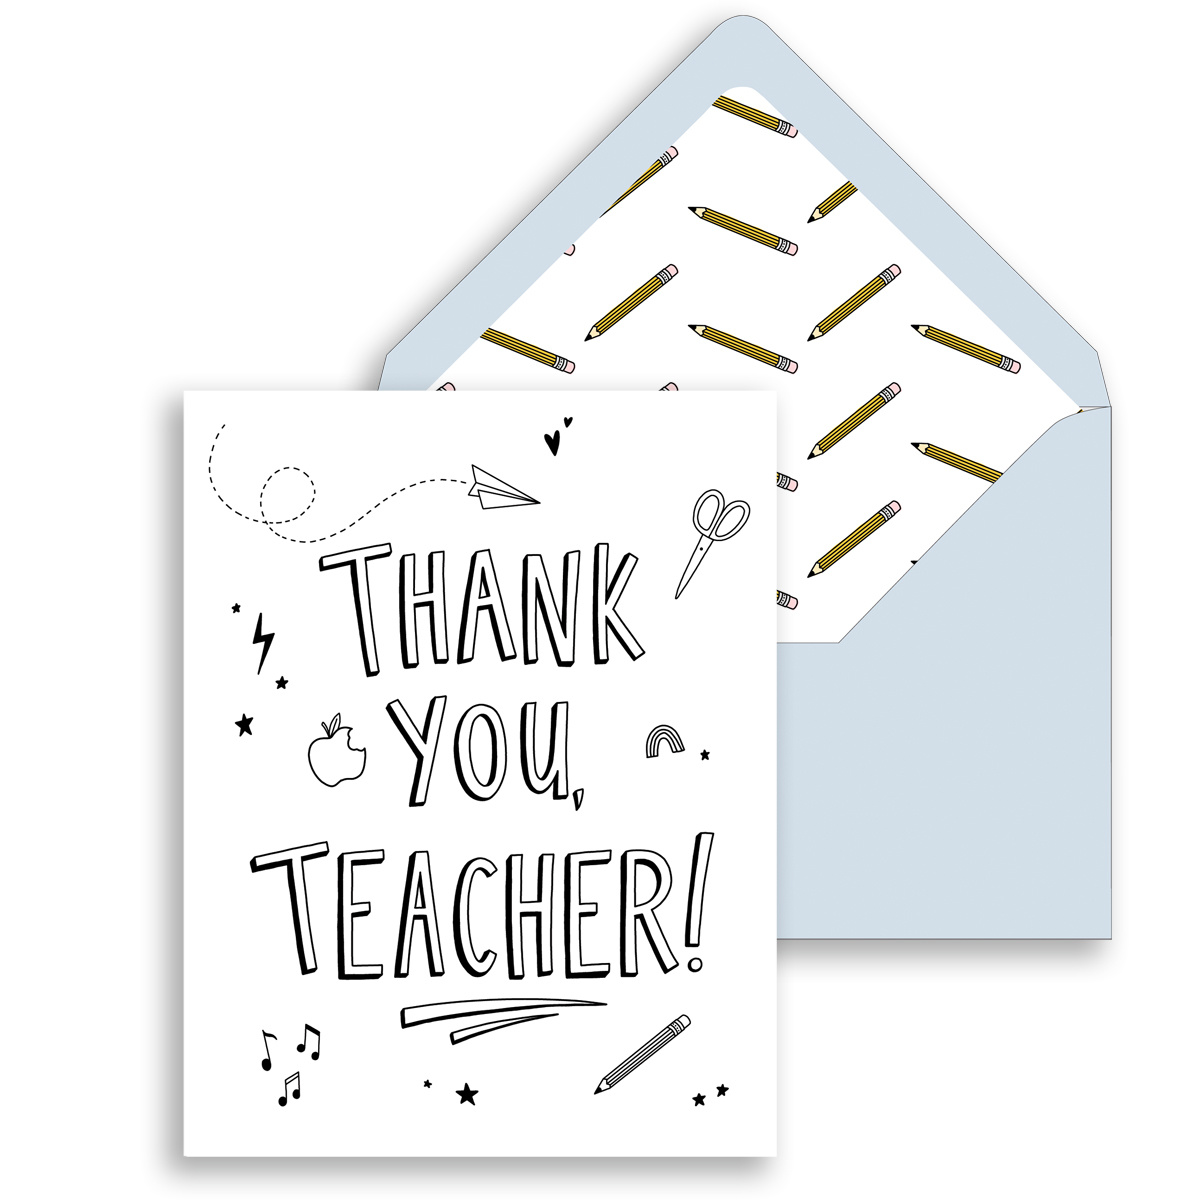 Gus and Ruby Letterpress Gus & Ruby - Thank You, Teacher set of 6